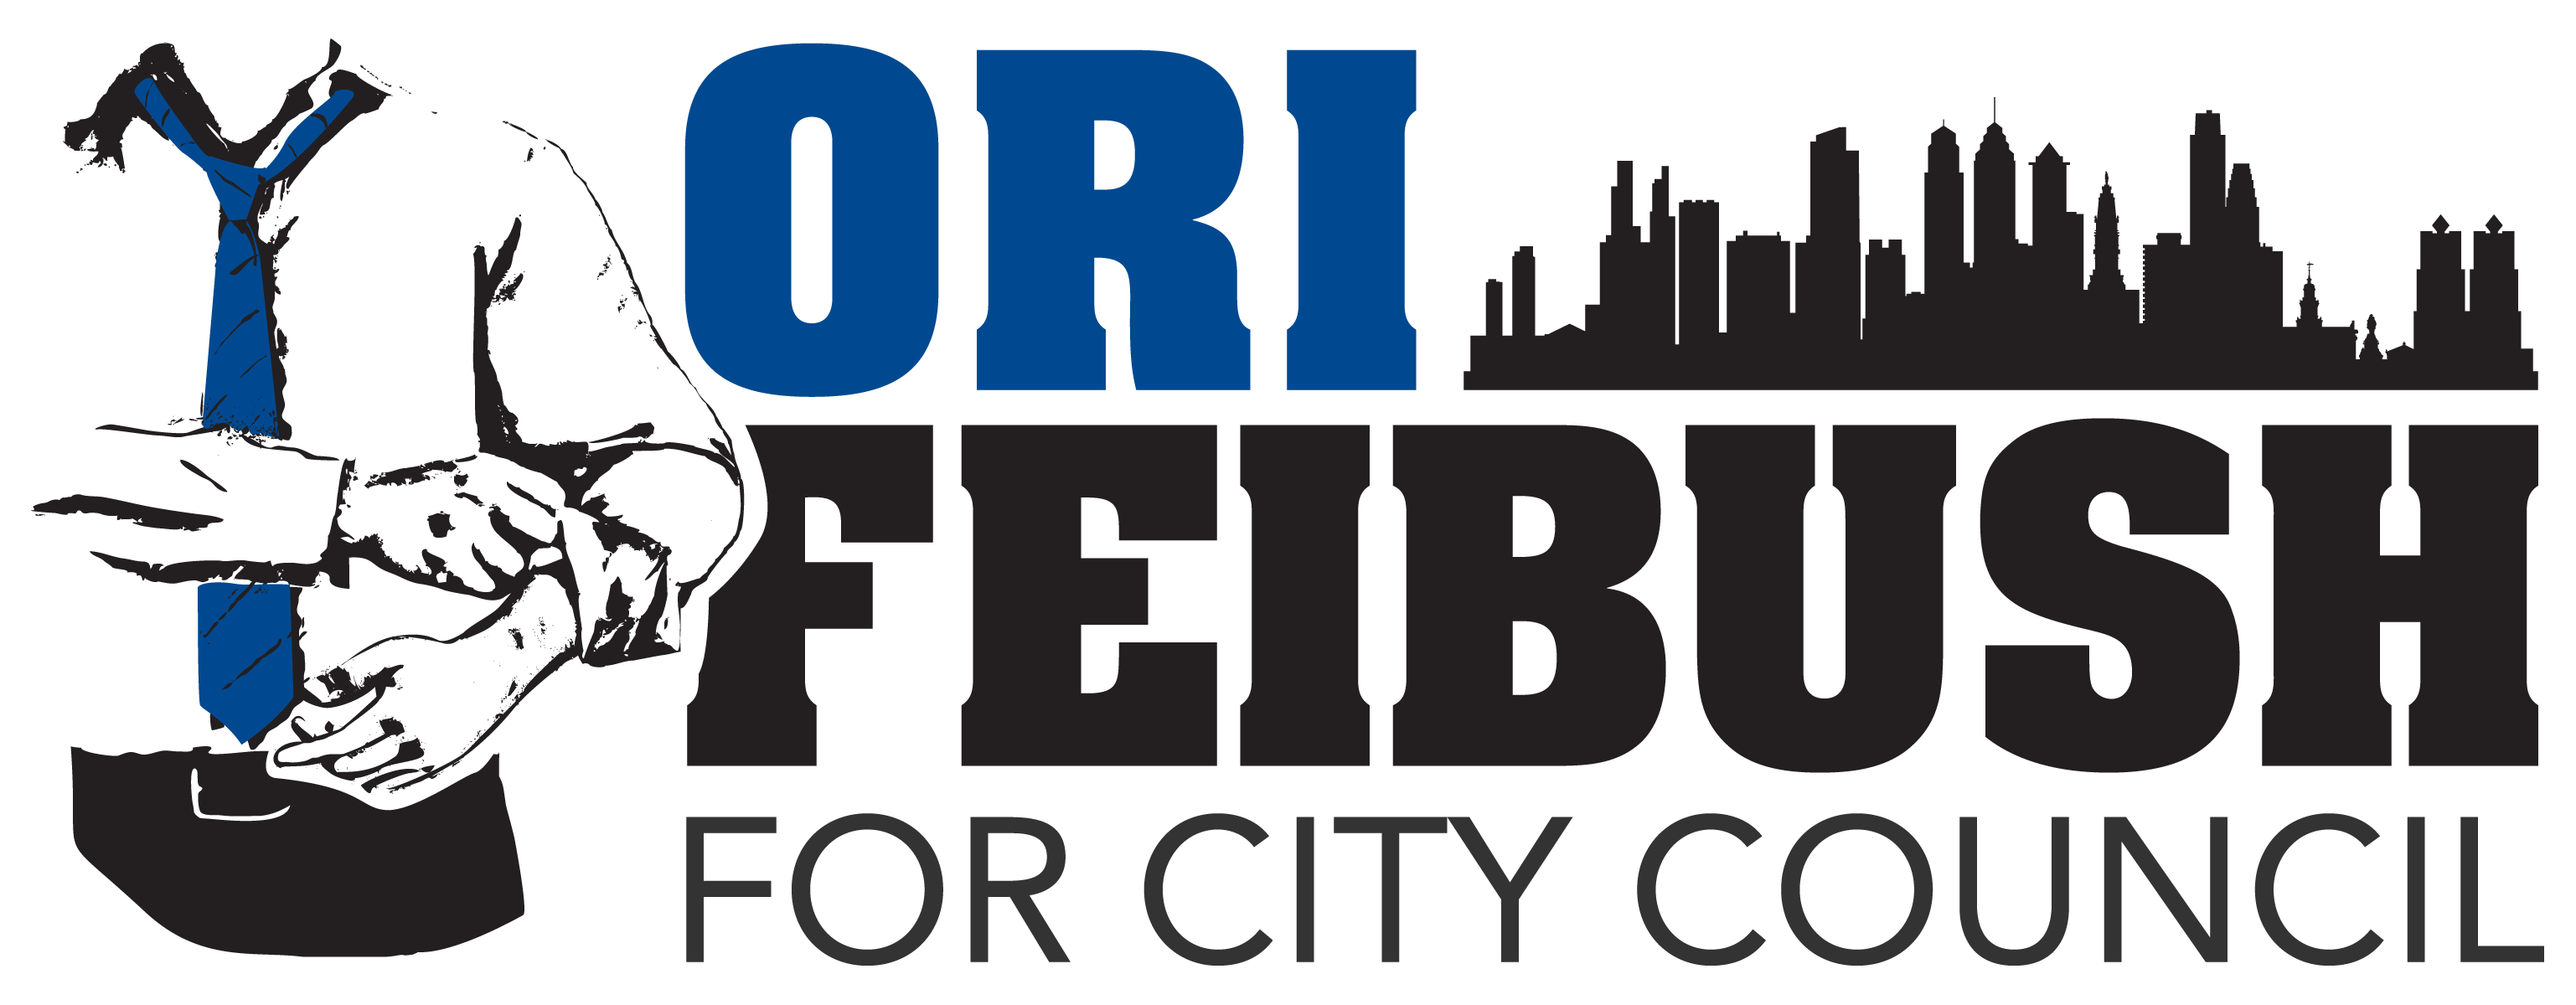 Ori Feibush for City Council